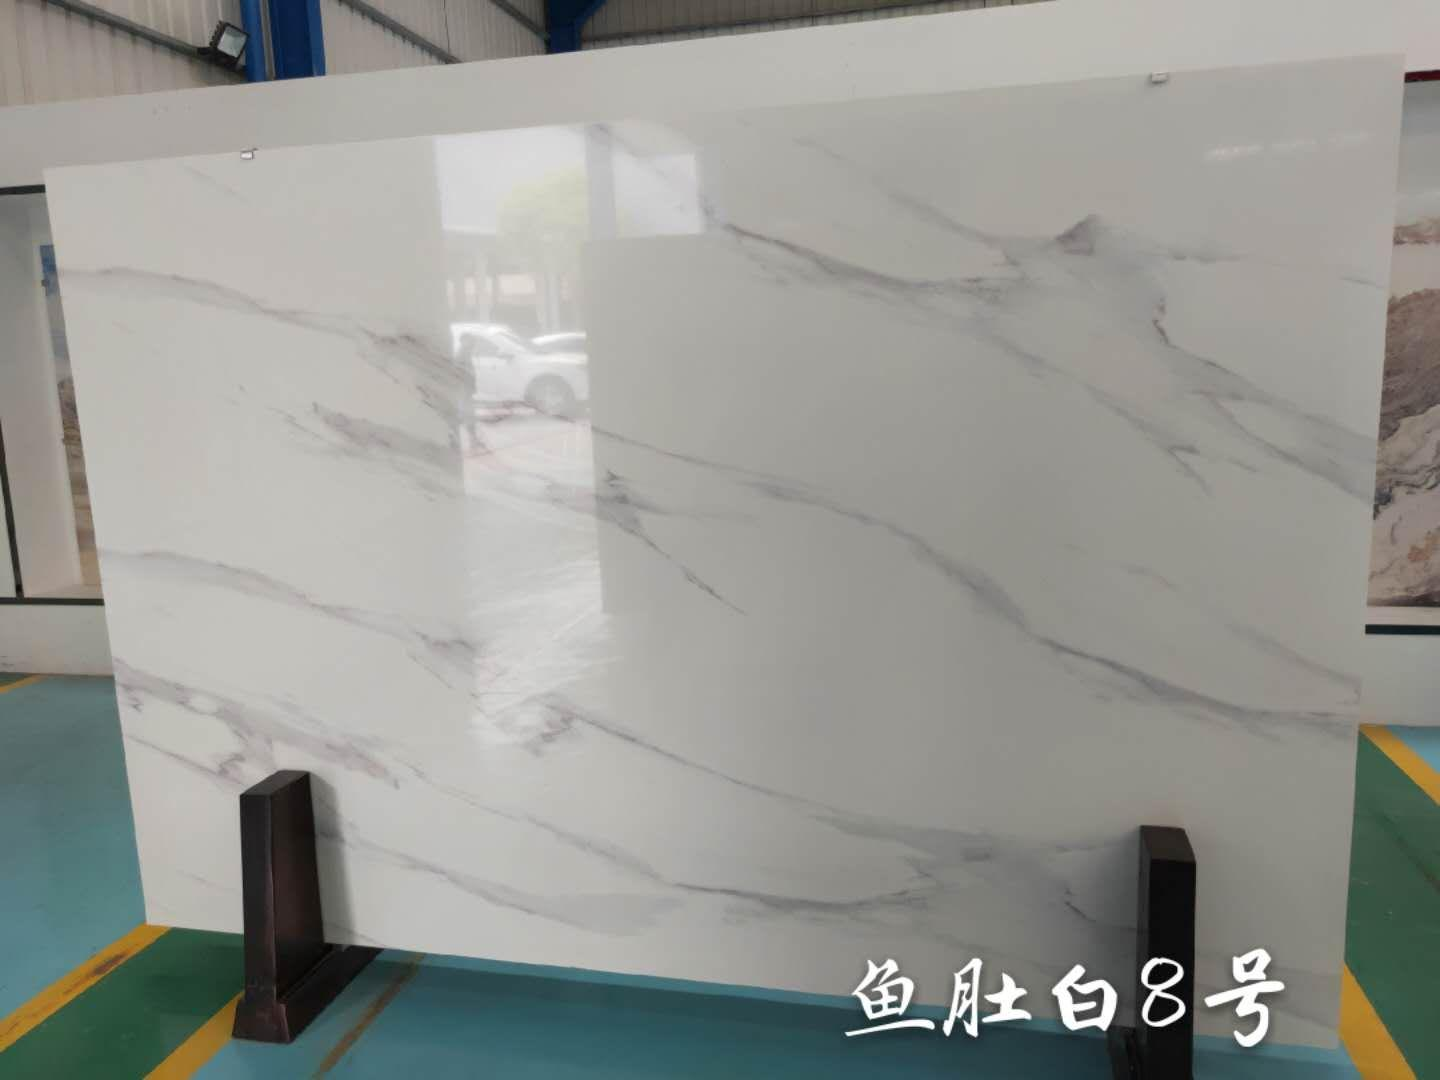 marble stone 3D print artificial marble slabs 5